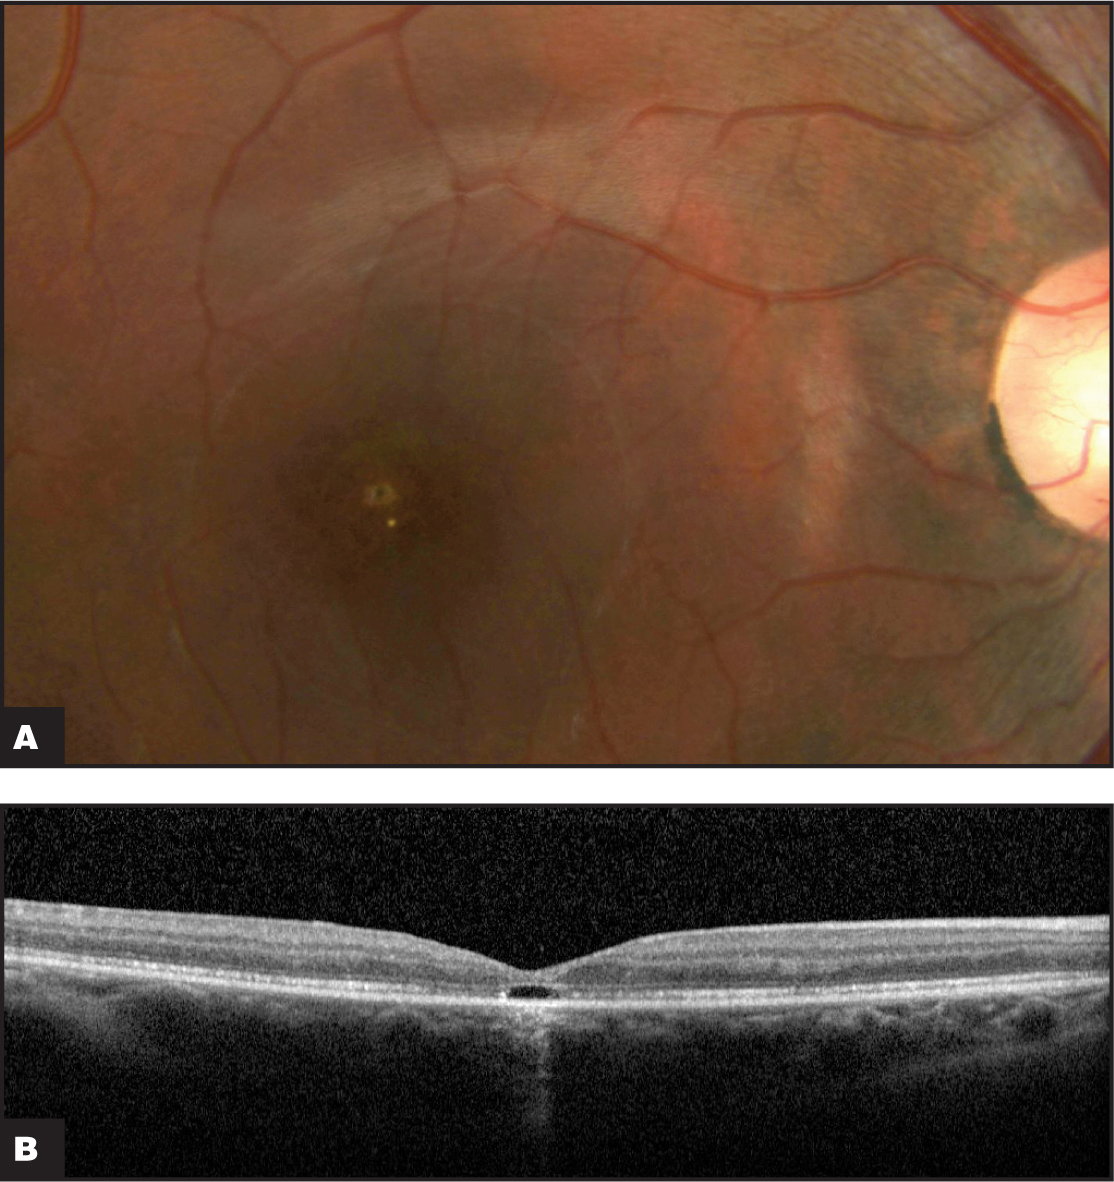 (A) Fundus photograph 6 weeks after macular hole repair surgery. (B) Spectral-domain OCT 6 weeks after surgery demonstrating macular hole closure with a small photoreceptor IS/OS defect.